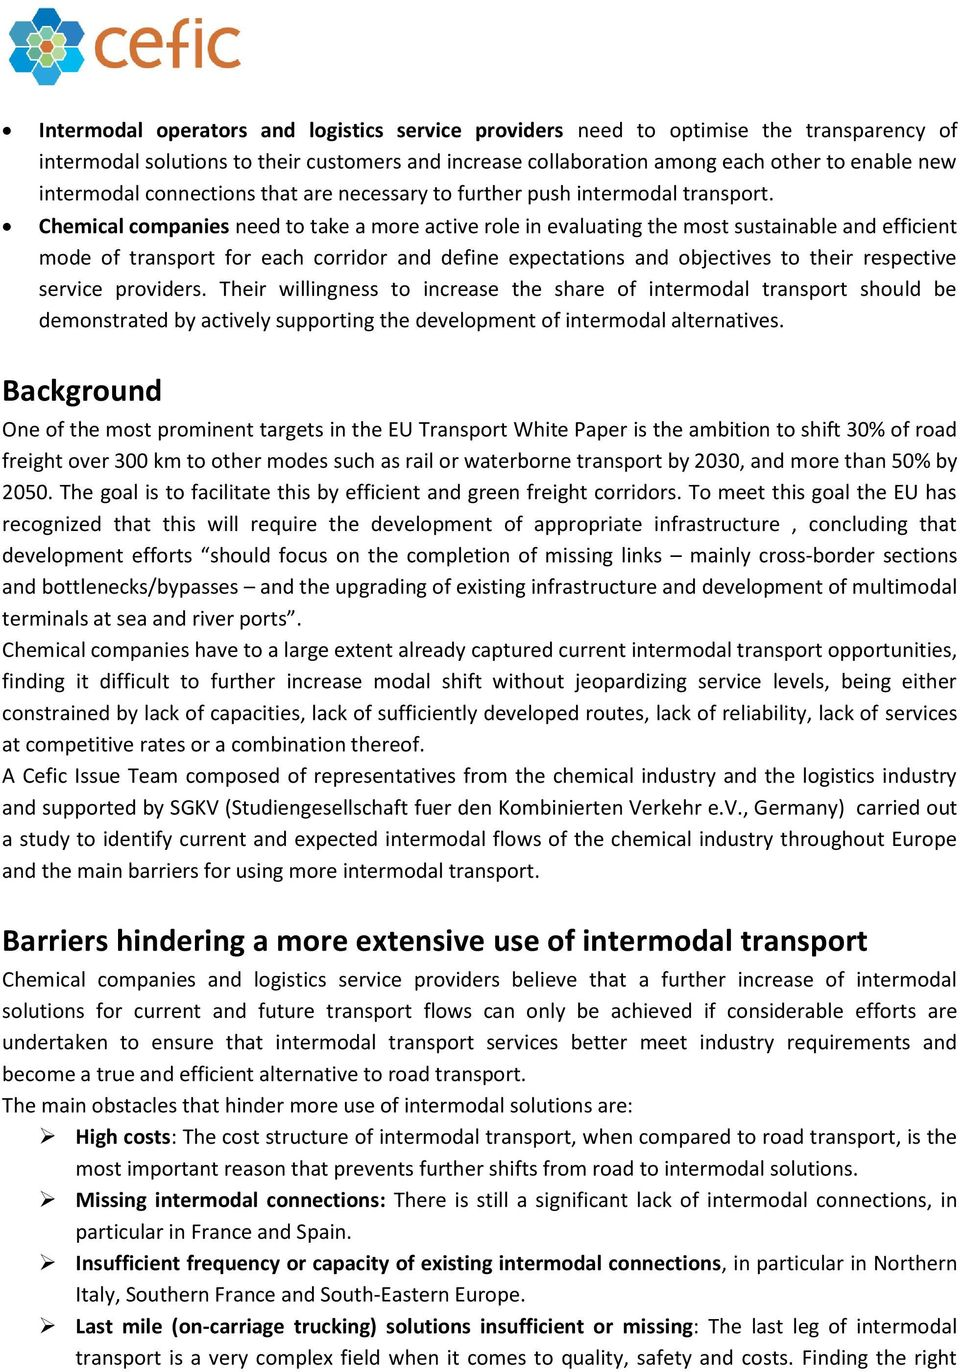 Chemical companies need to take a more active role in evaluating the most sustainable and efficient mode of transport for each corridor and define expectations and objectives to their respective